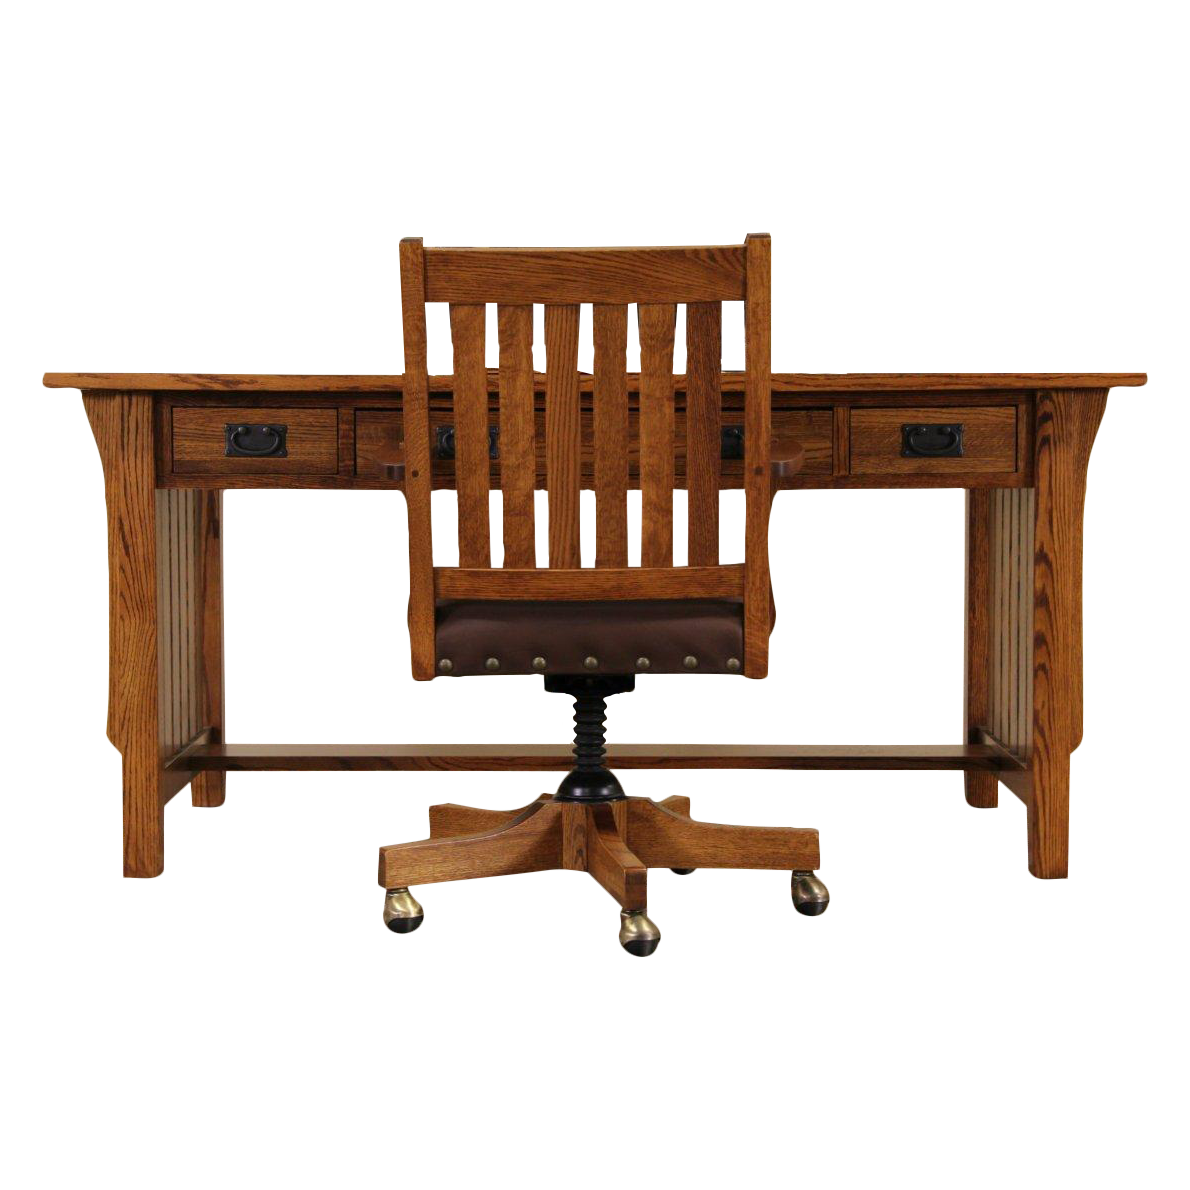 high asian rooms style desks antique governor maitland restoration htm set drop winthrop furniture block with end glascoe chair chippendale hardware desk used picture